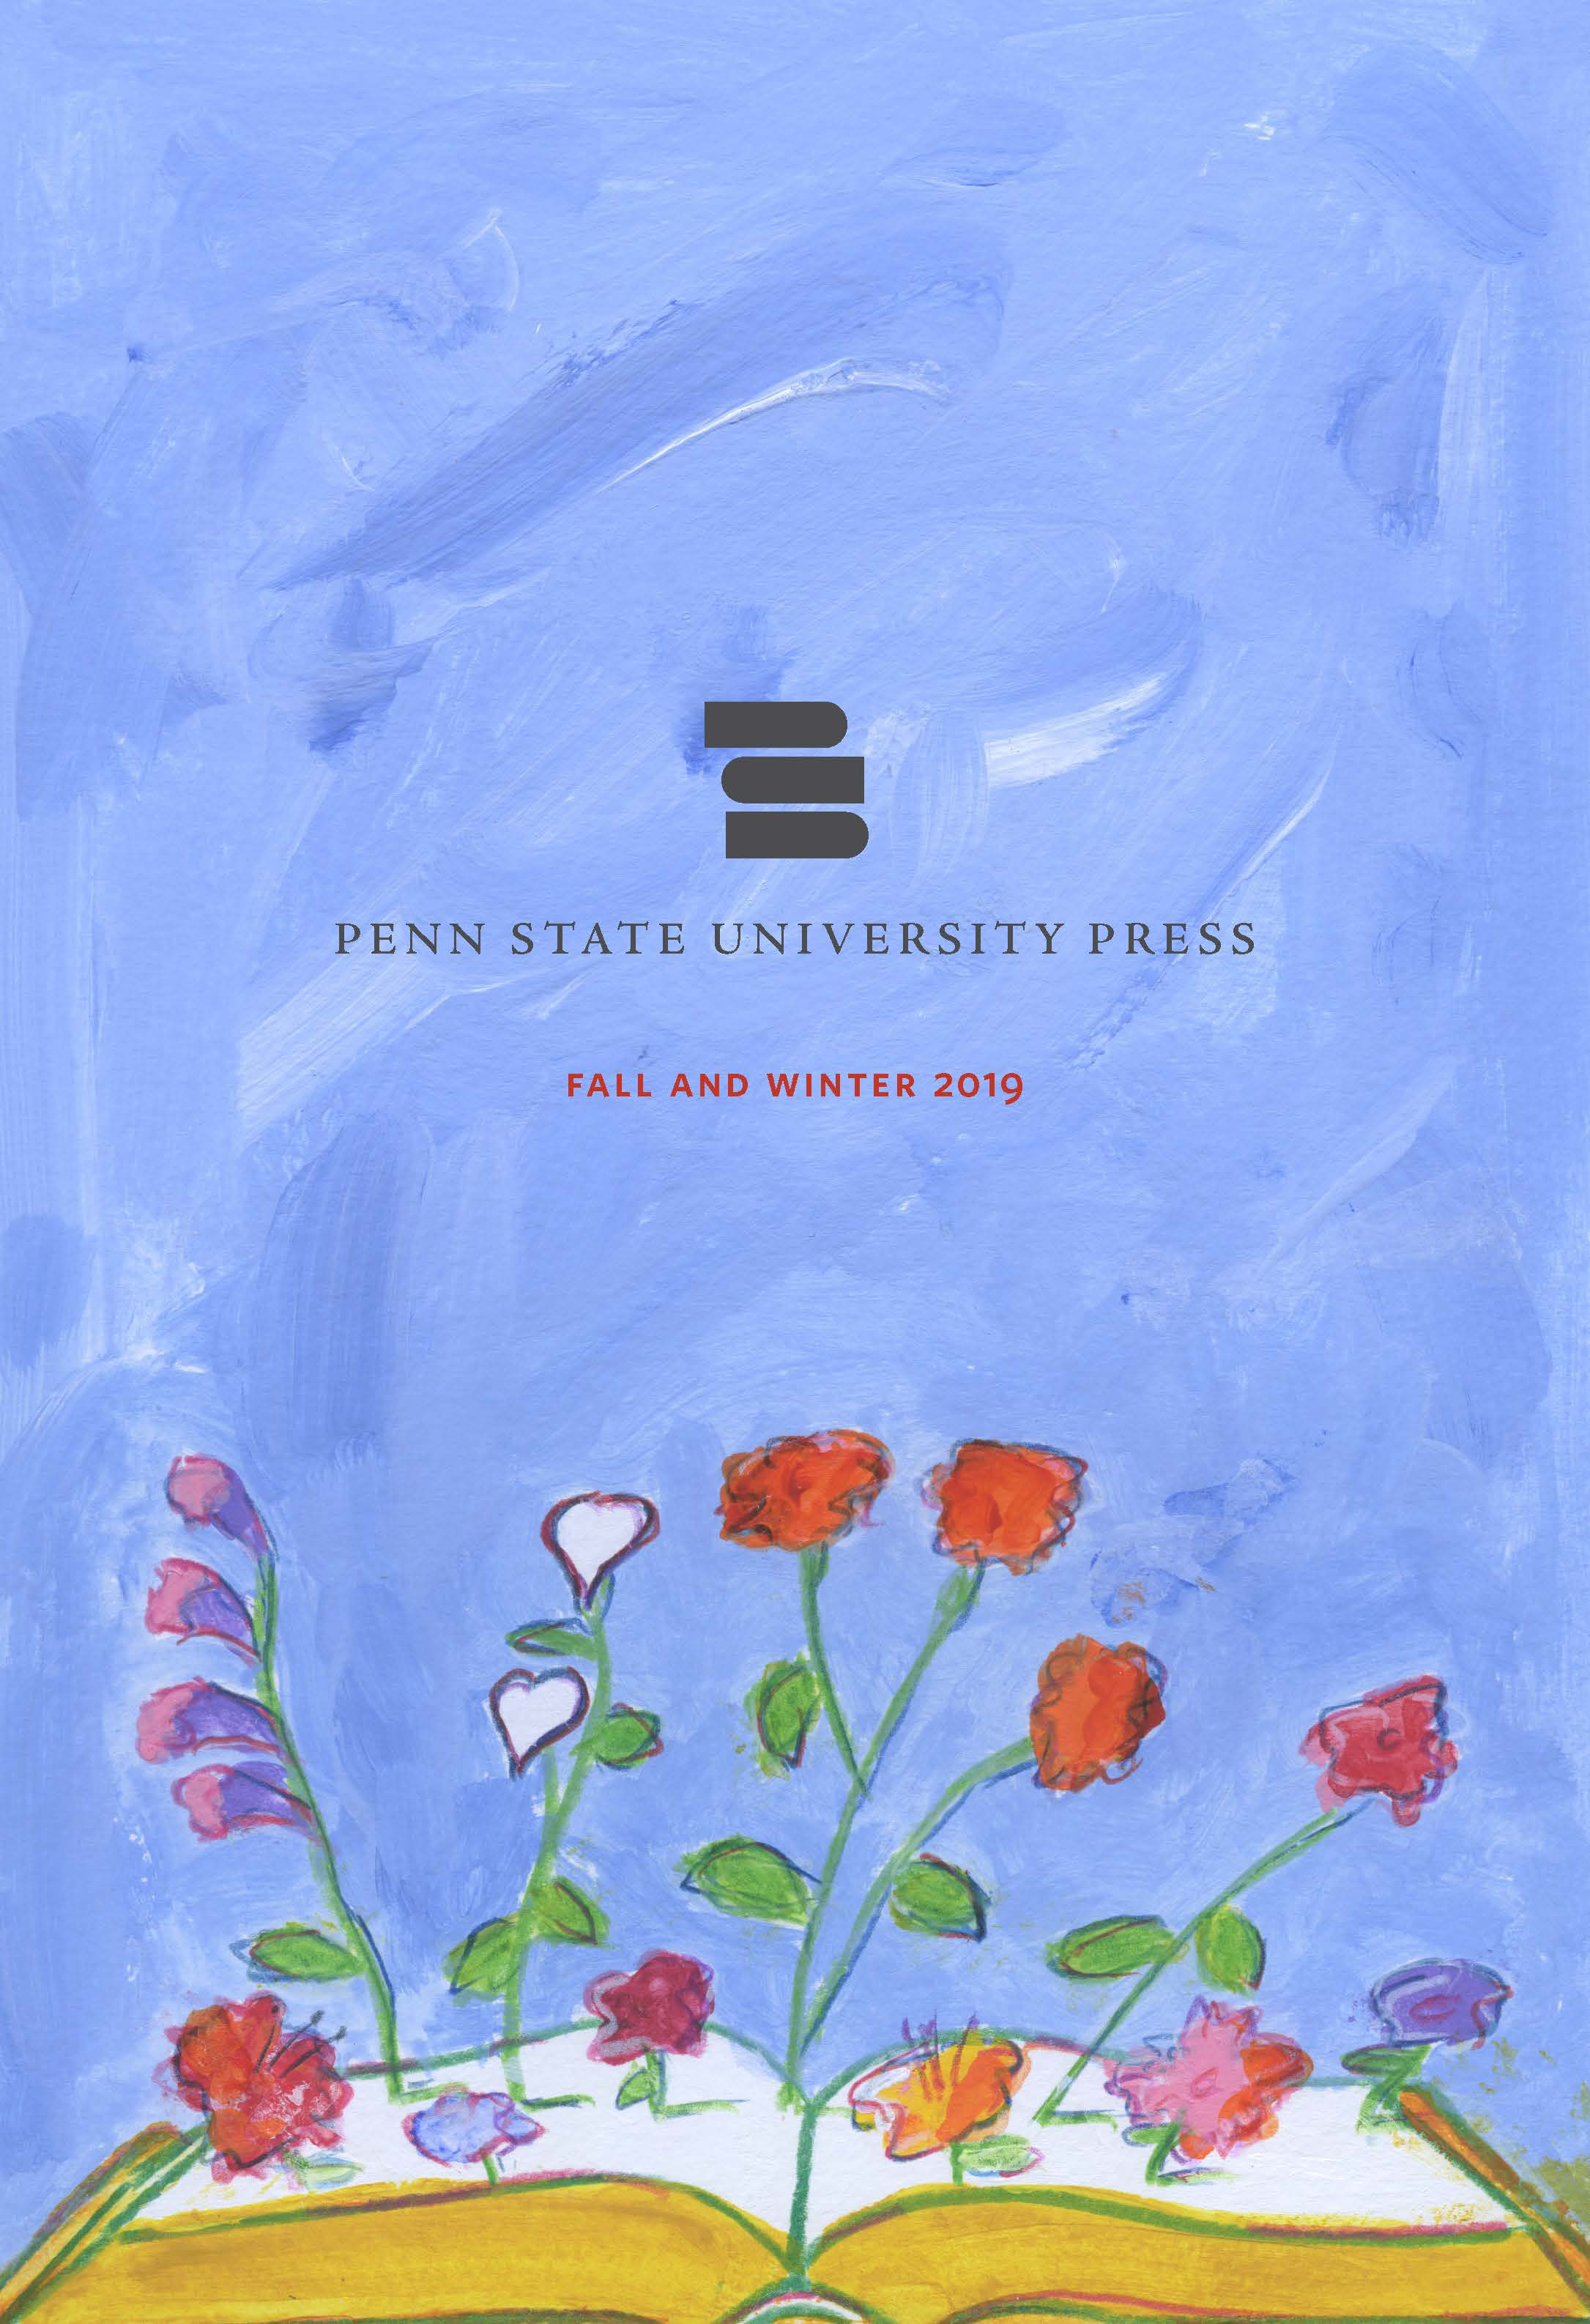 penn state u press fall 2019